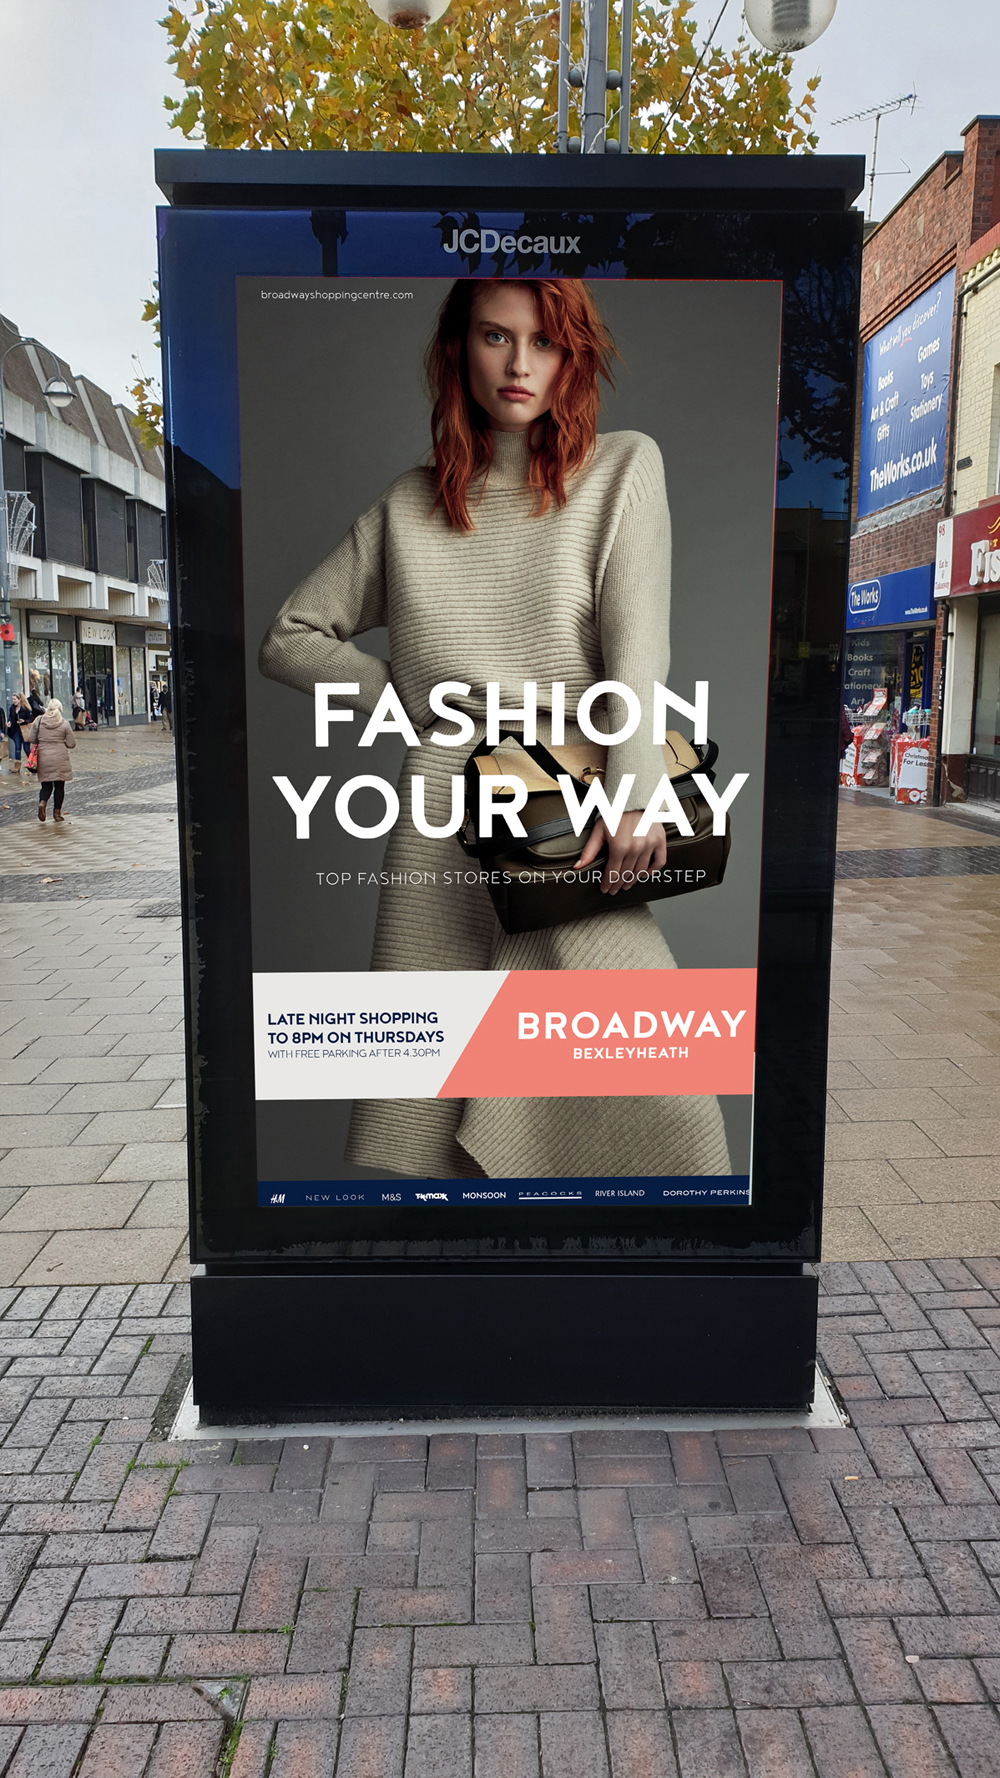 Bus stop advertising the fashion offer at a local shopping centre